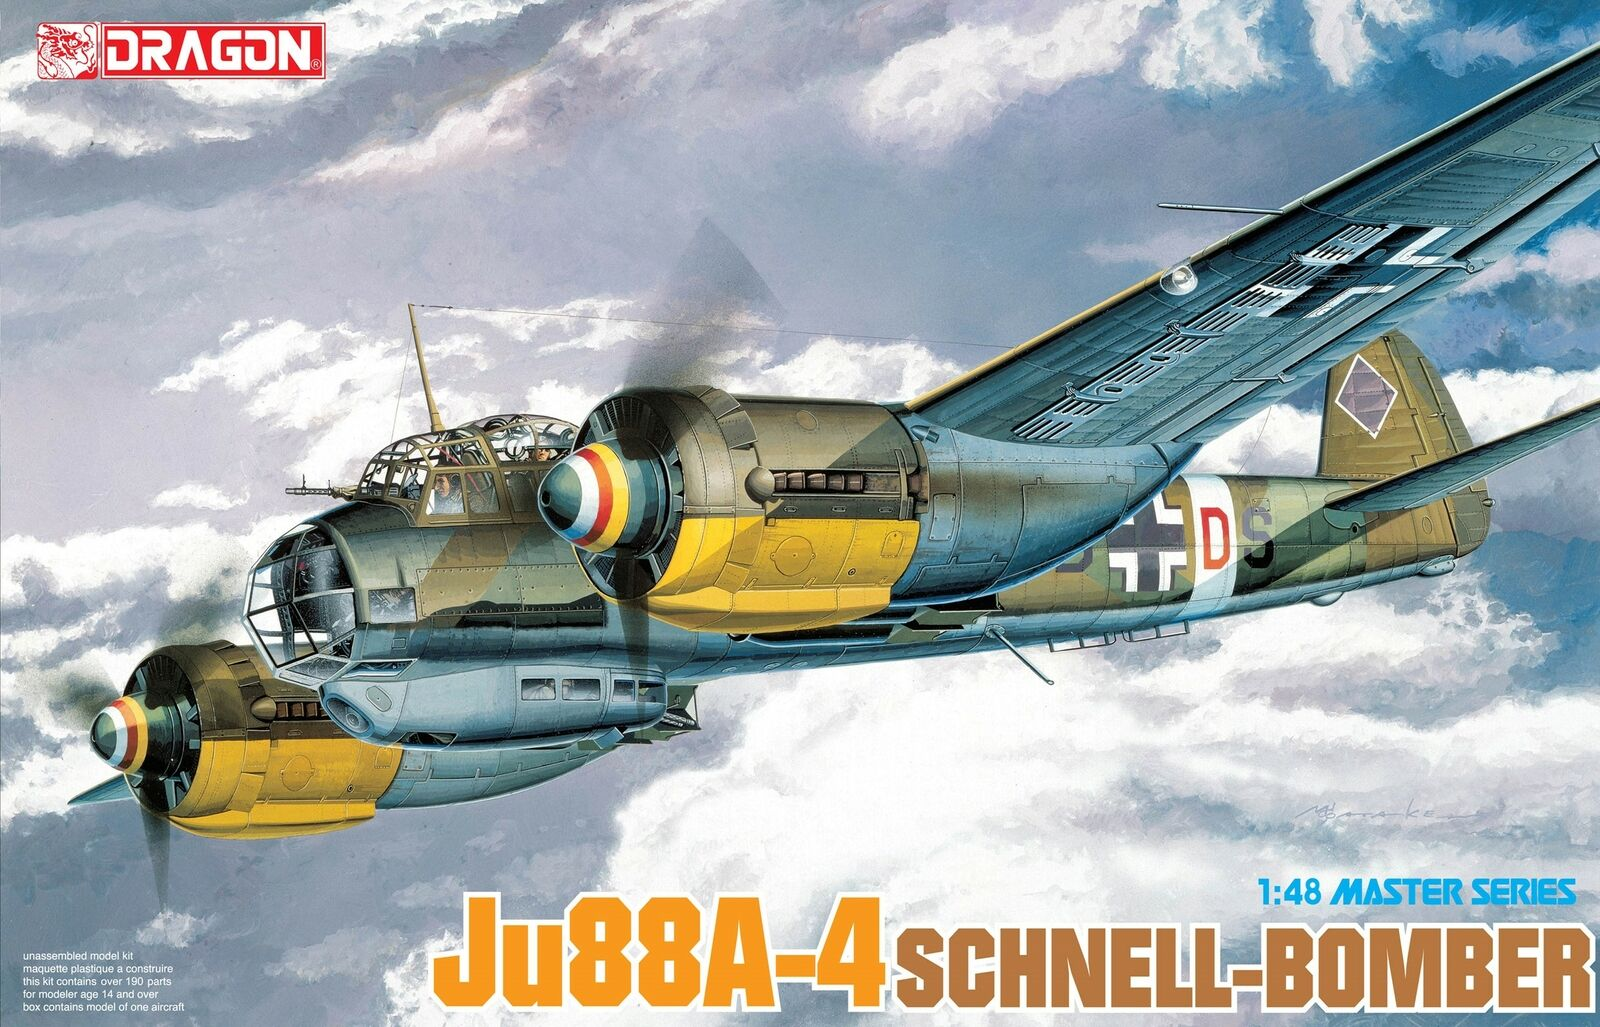 Dragon 1 48 Junkers Ju-88A-4 Schnell-Bomber